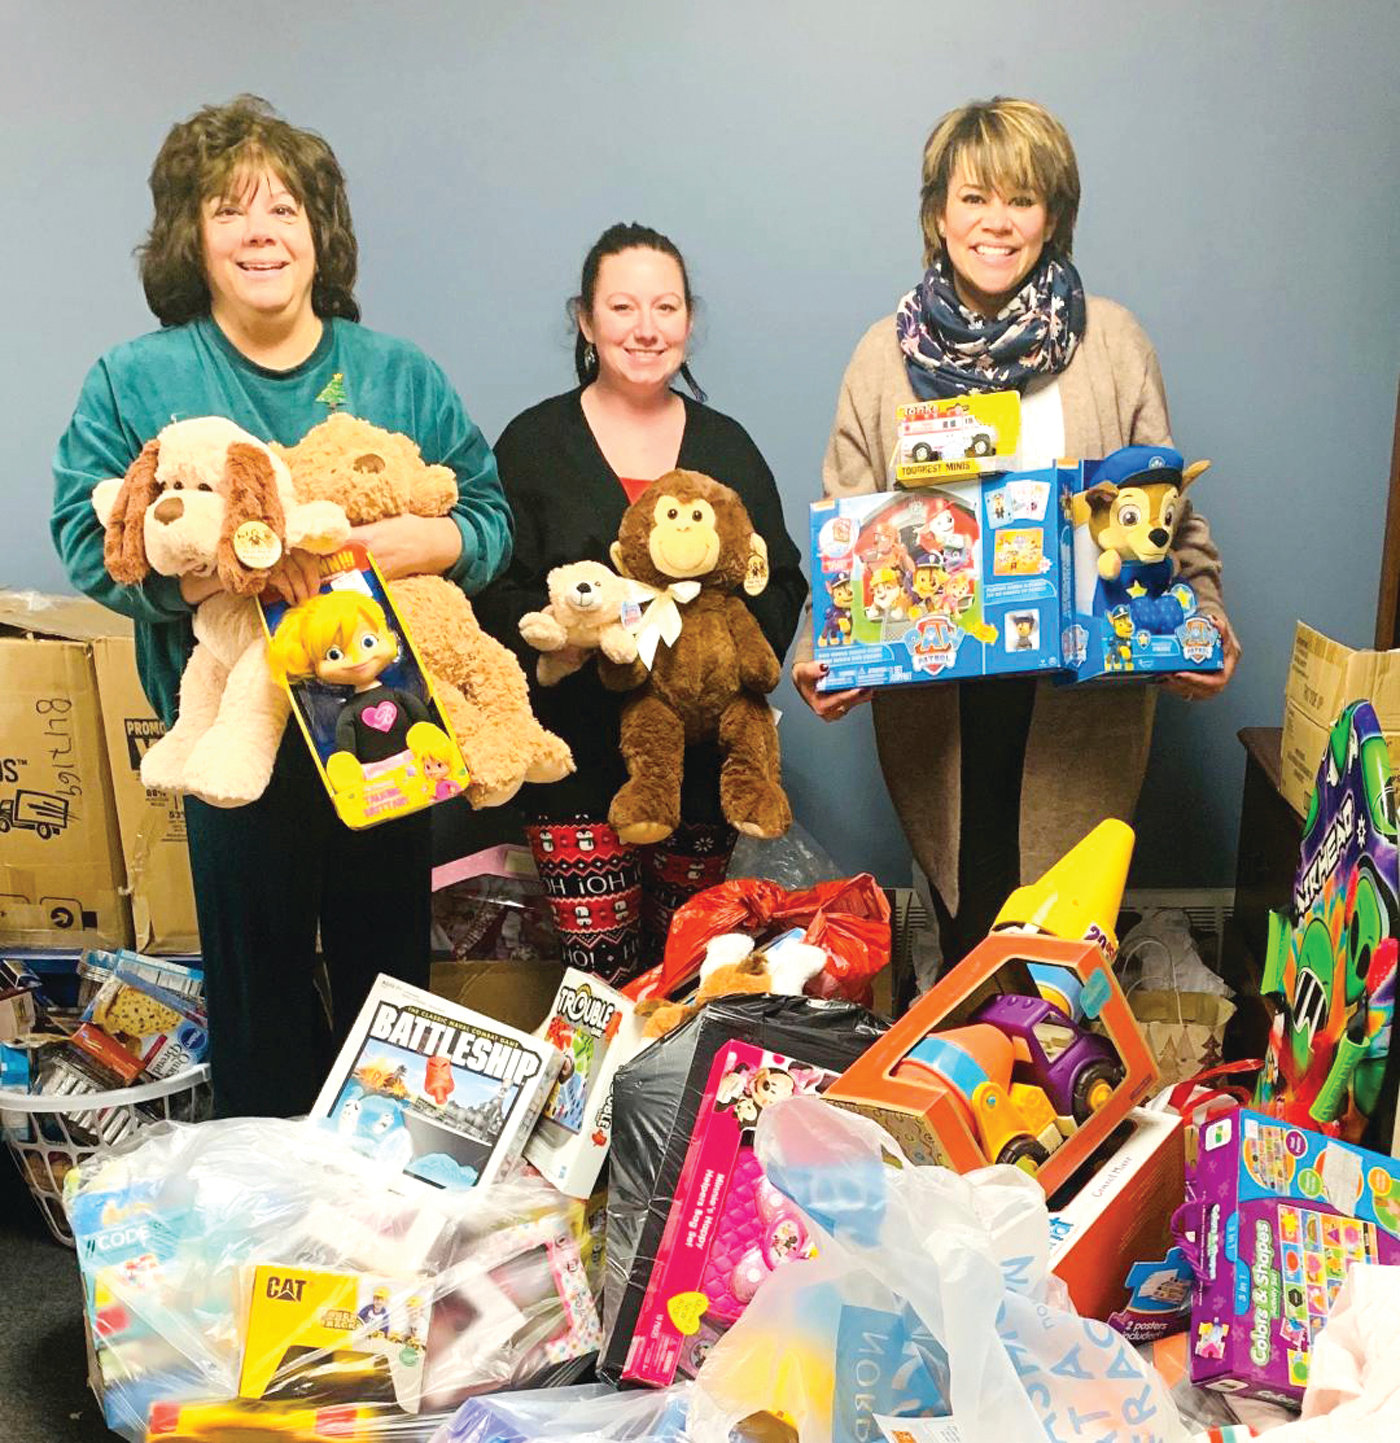 MAKING MORE SMILES: L-R, Joanne McGunagle, Executive Director and CEO of CCAP along with Taryn Gilchrist, from POCO LOCO and Lammis Vargas showcase some of the toys collected.